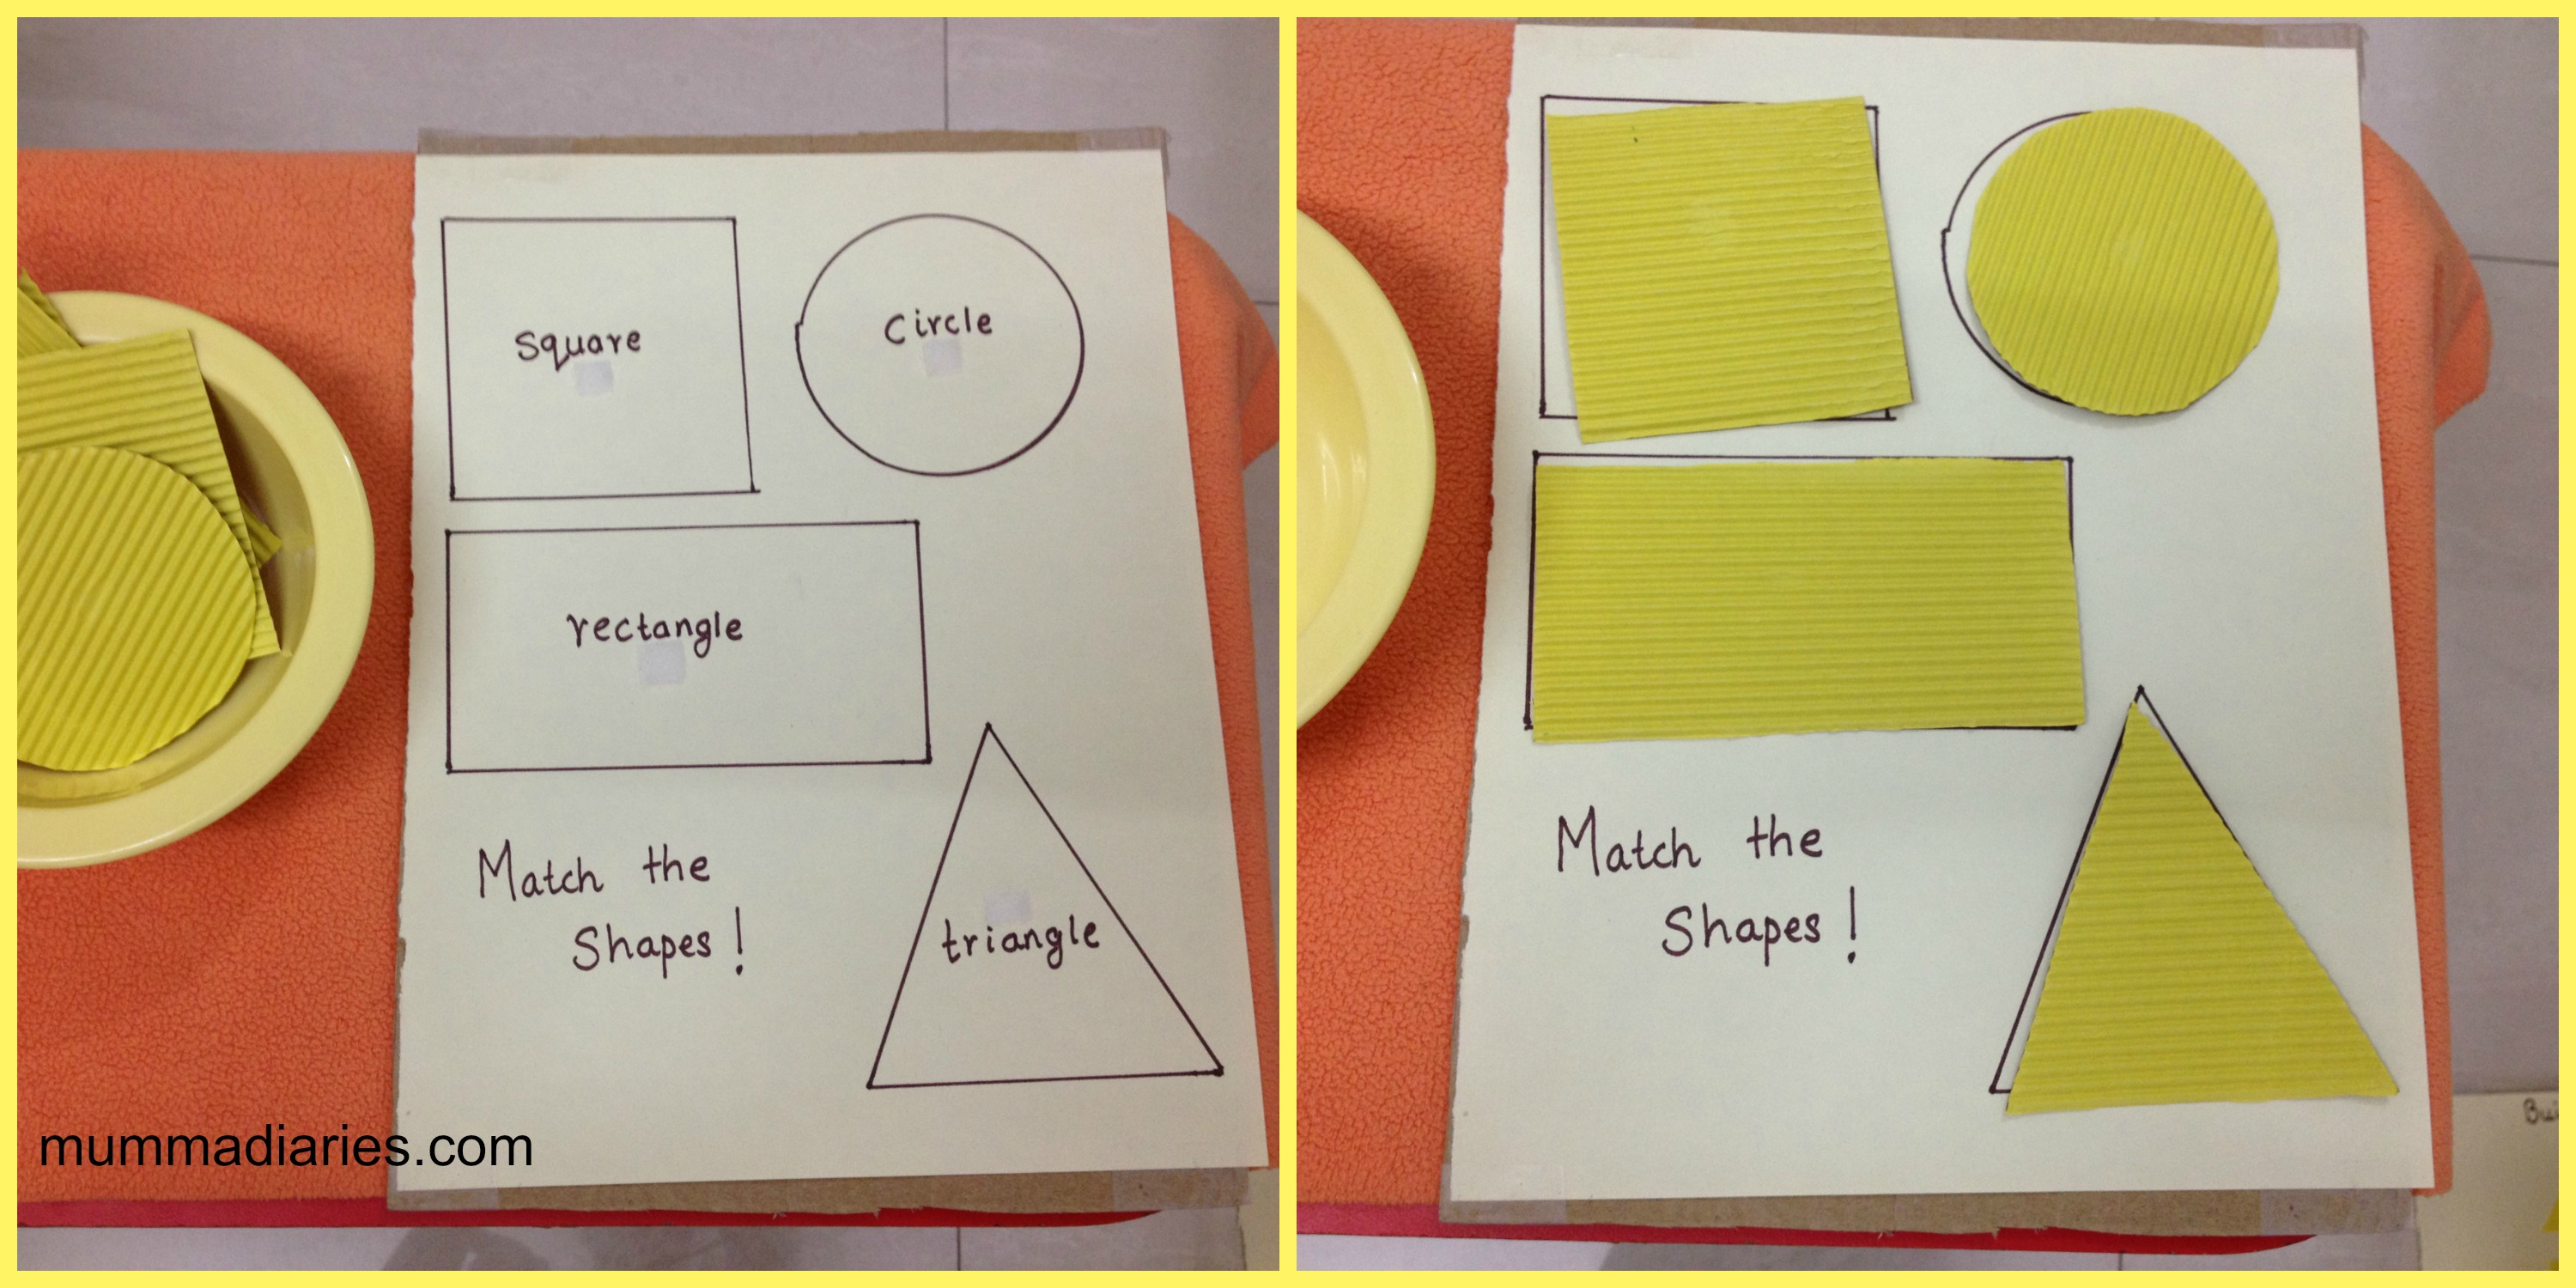 Activities for colors for toddlers - Activity 8 Arts Craft Sticker Activity We Used Yellow Star Shaped Stickers To Stick Onto The Blue Sky Later He Wanted To Match The Moon With An